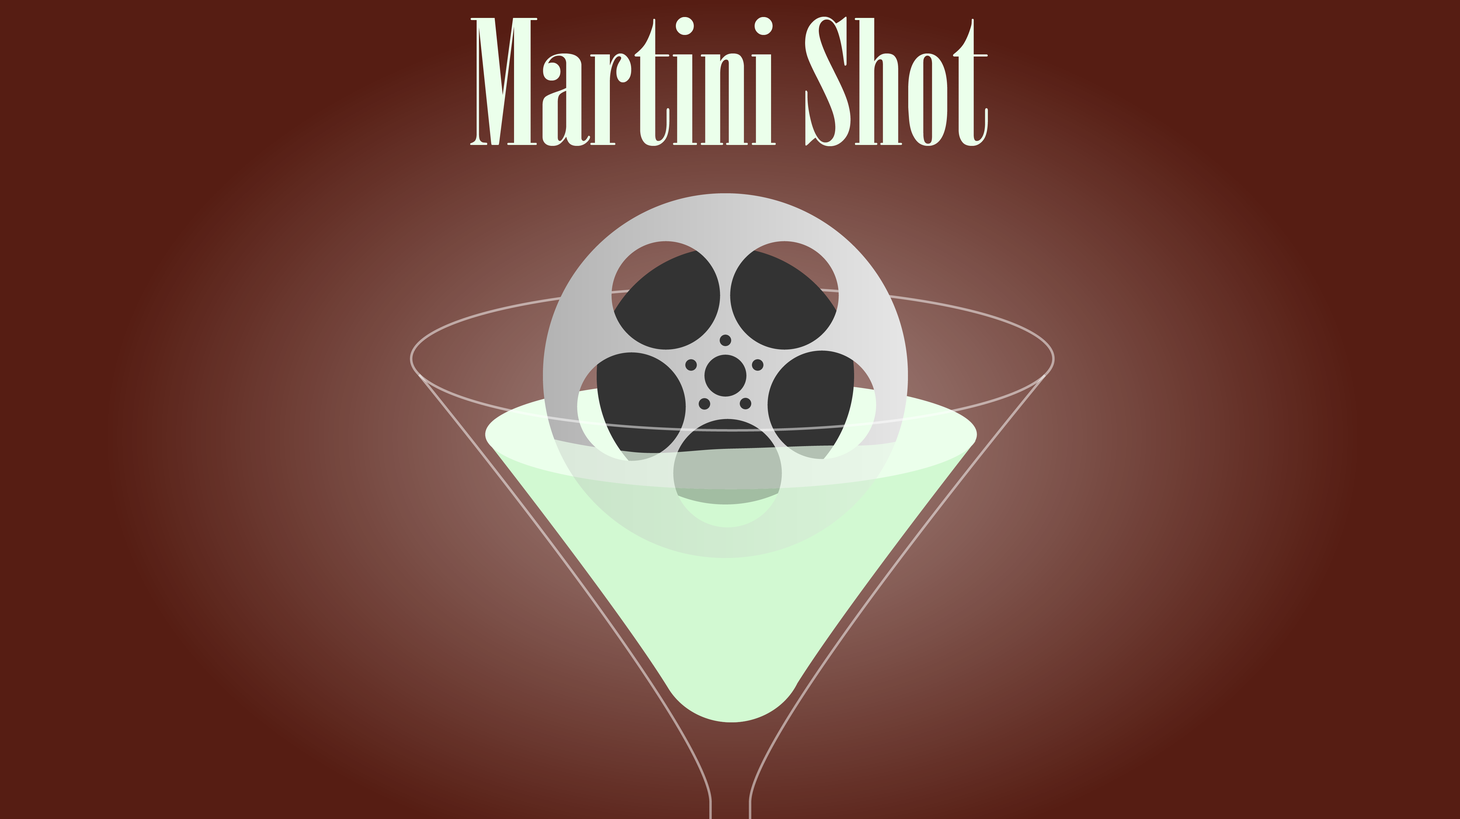 Today, for the first time ever, Rob attempts to monetize Martini Shot, and even monetize this promo, by reminding everyone that my two books have been republished in one volume and are available on Amazon and fine bookstores everywhere.